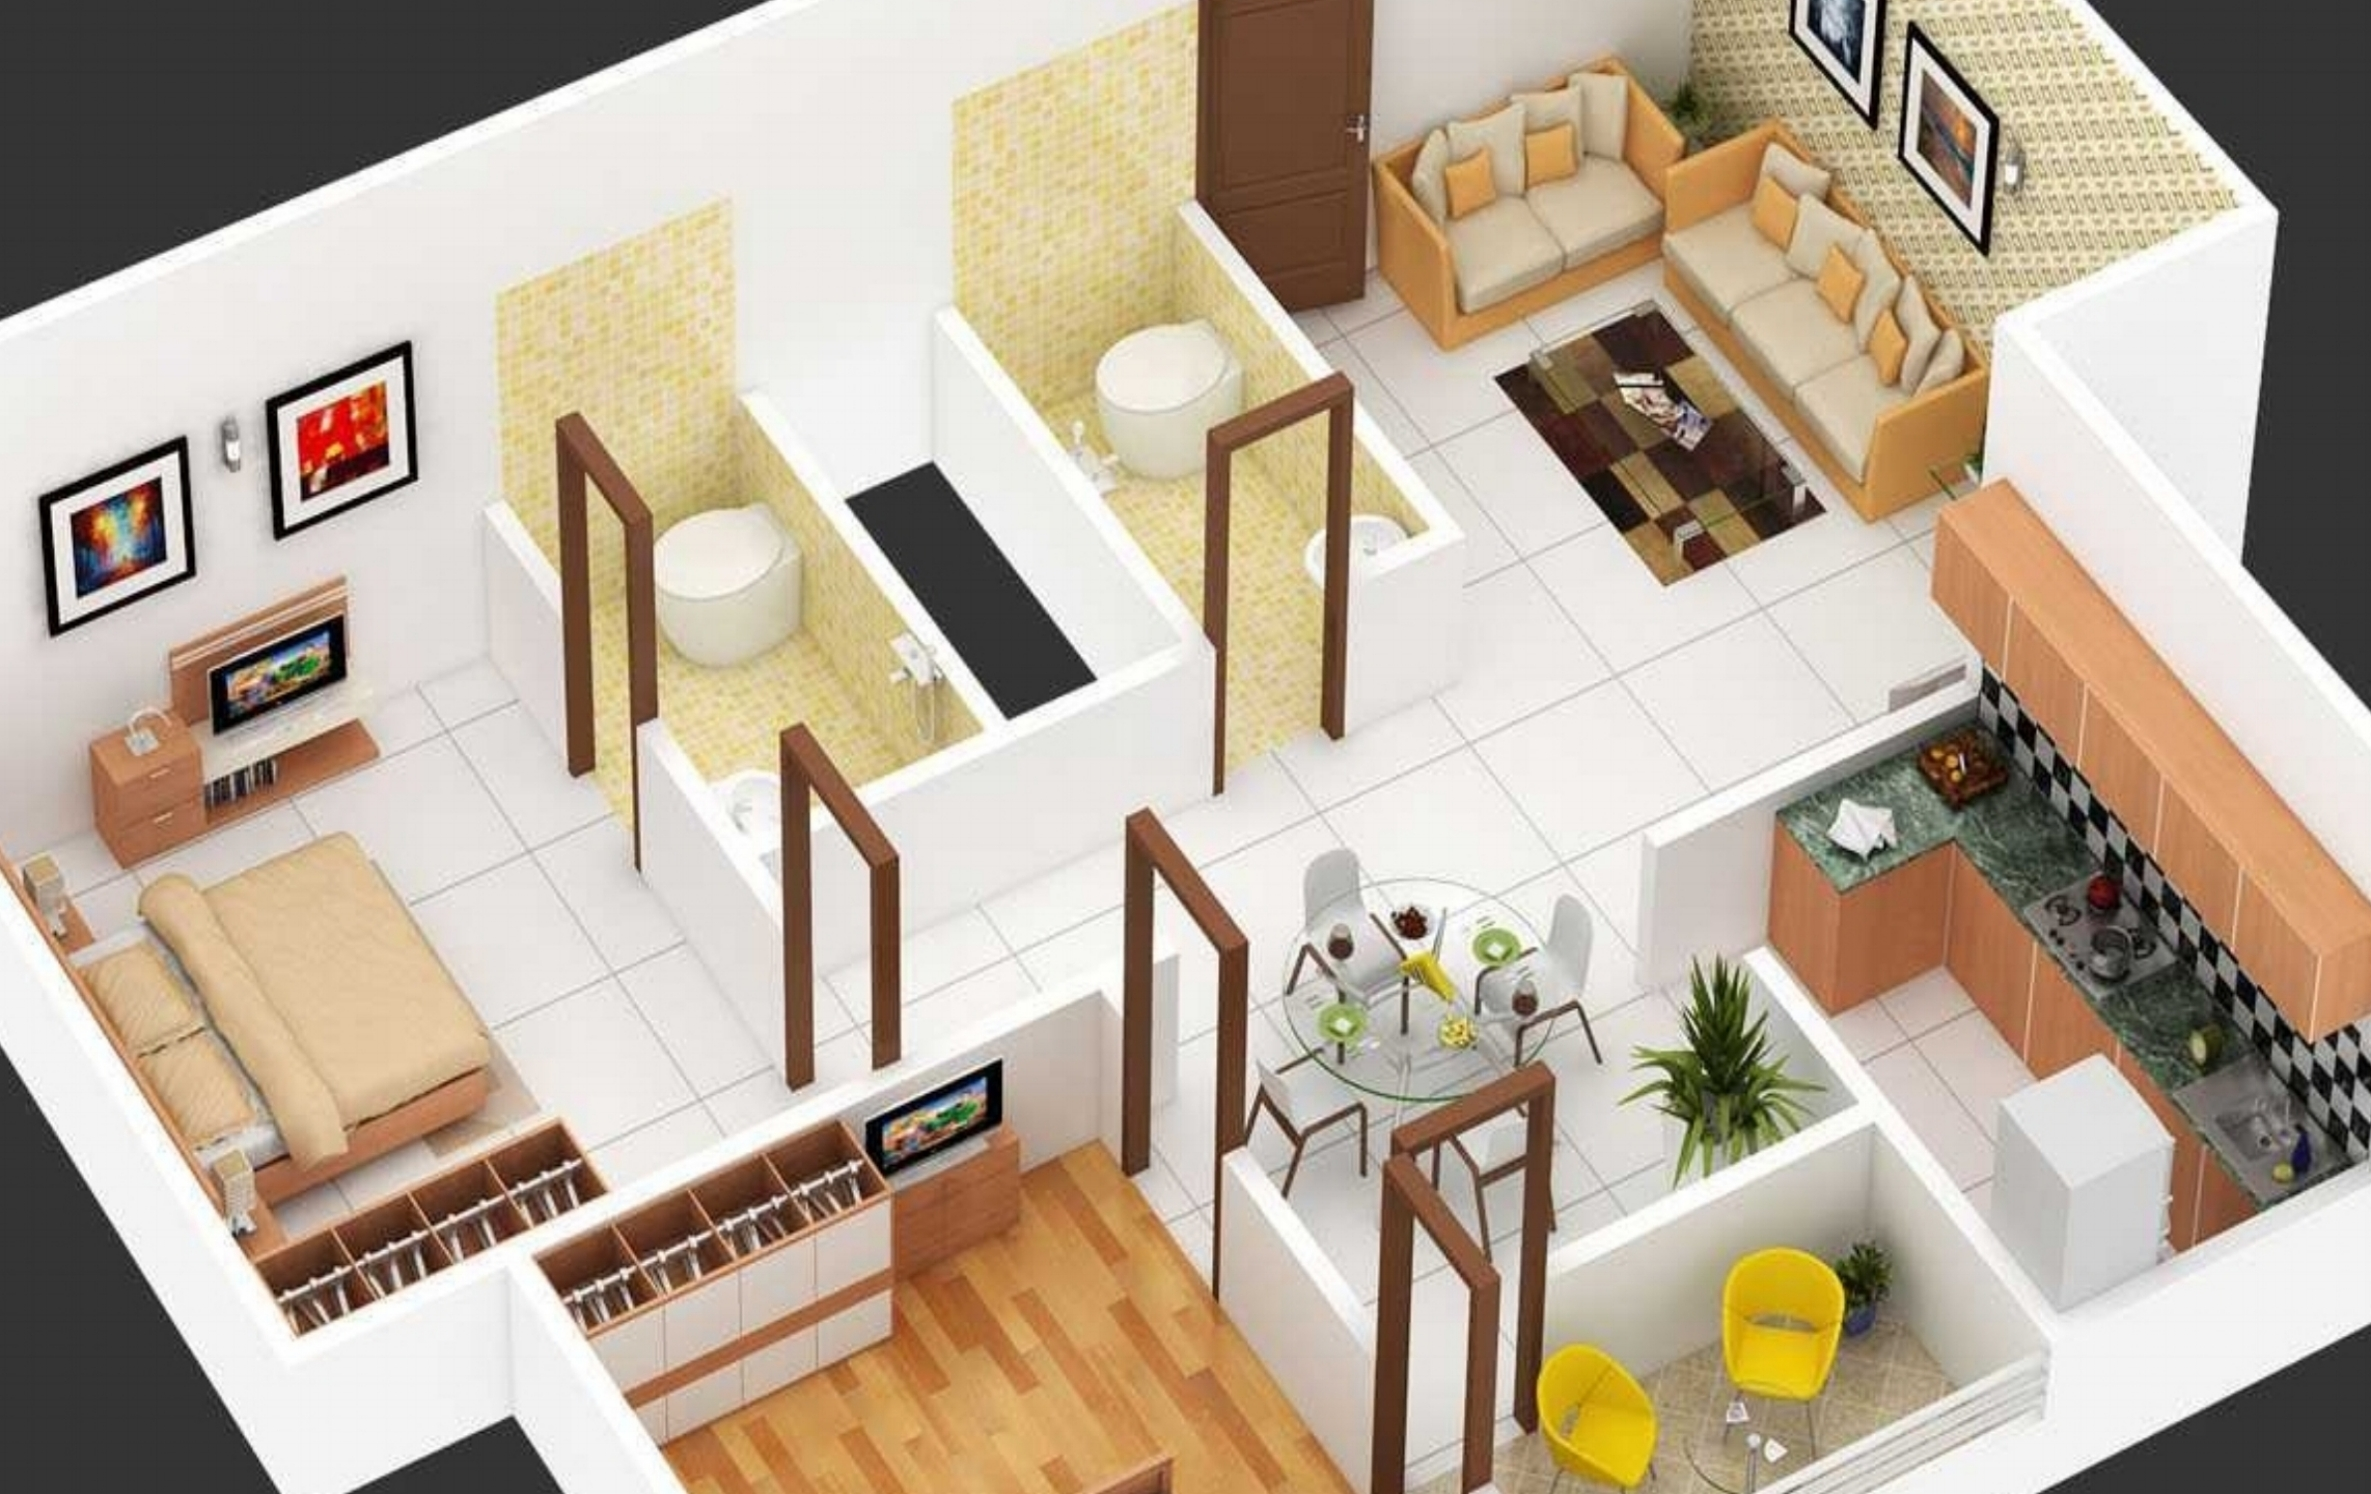 stunning-2bhk-room-and-car-parking-3d-design-trends-including-remodeling-a-mobile-bhk-parkingdesign-gallery-floor-plan-ideas.jpg